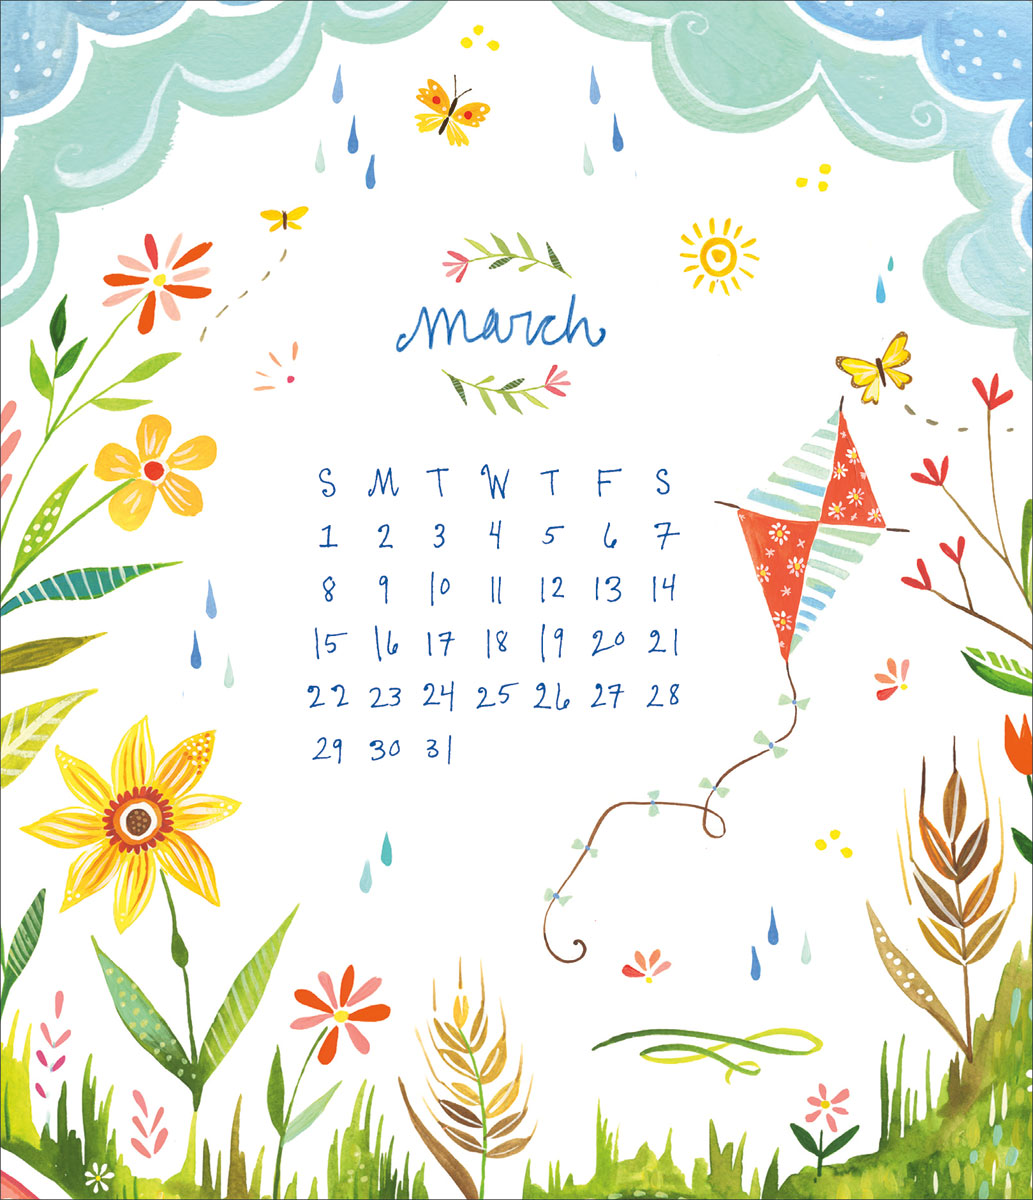 March 2015 Calendar Wallpaper Pictures and JPG GIF PNG Images Happy 1033x1200